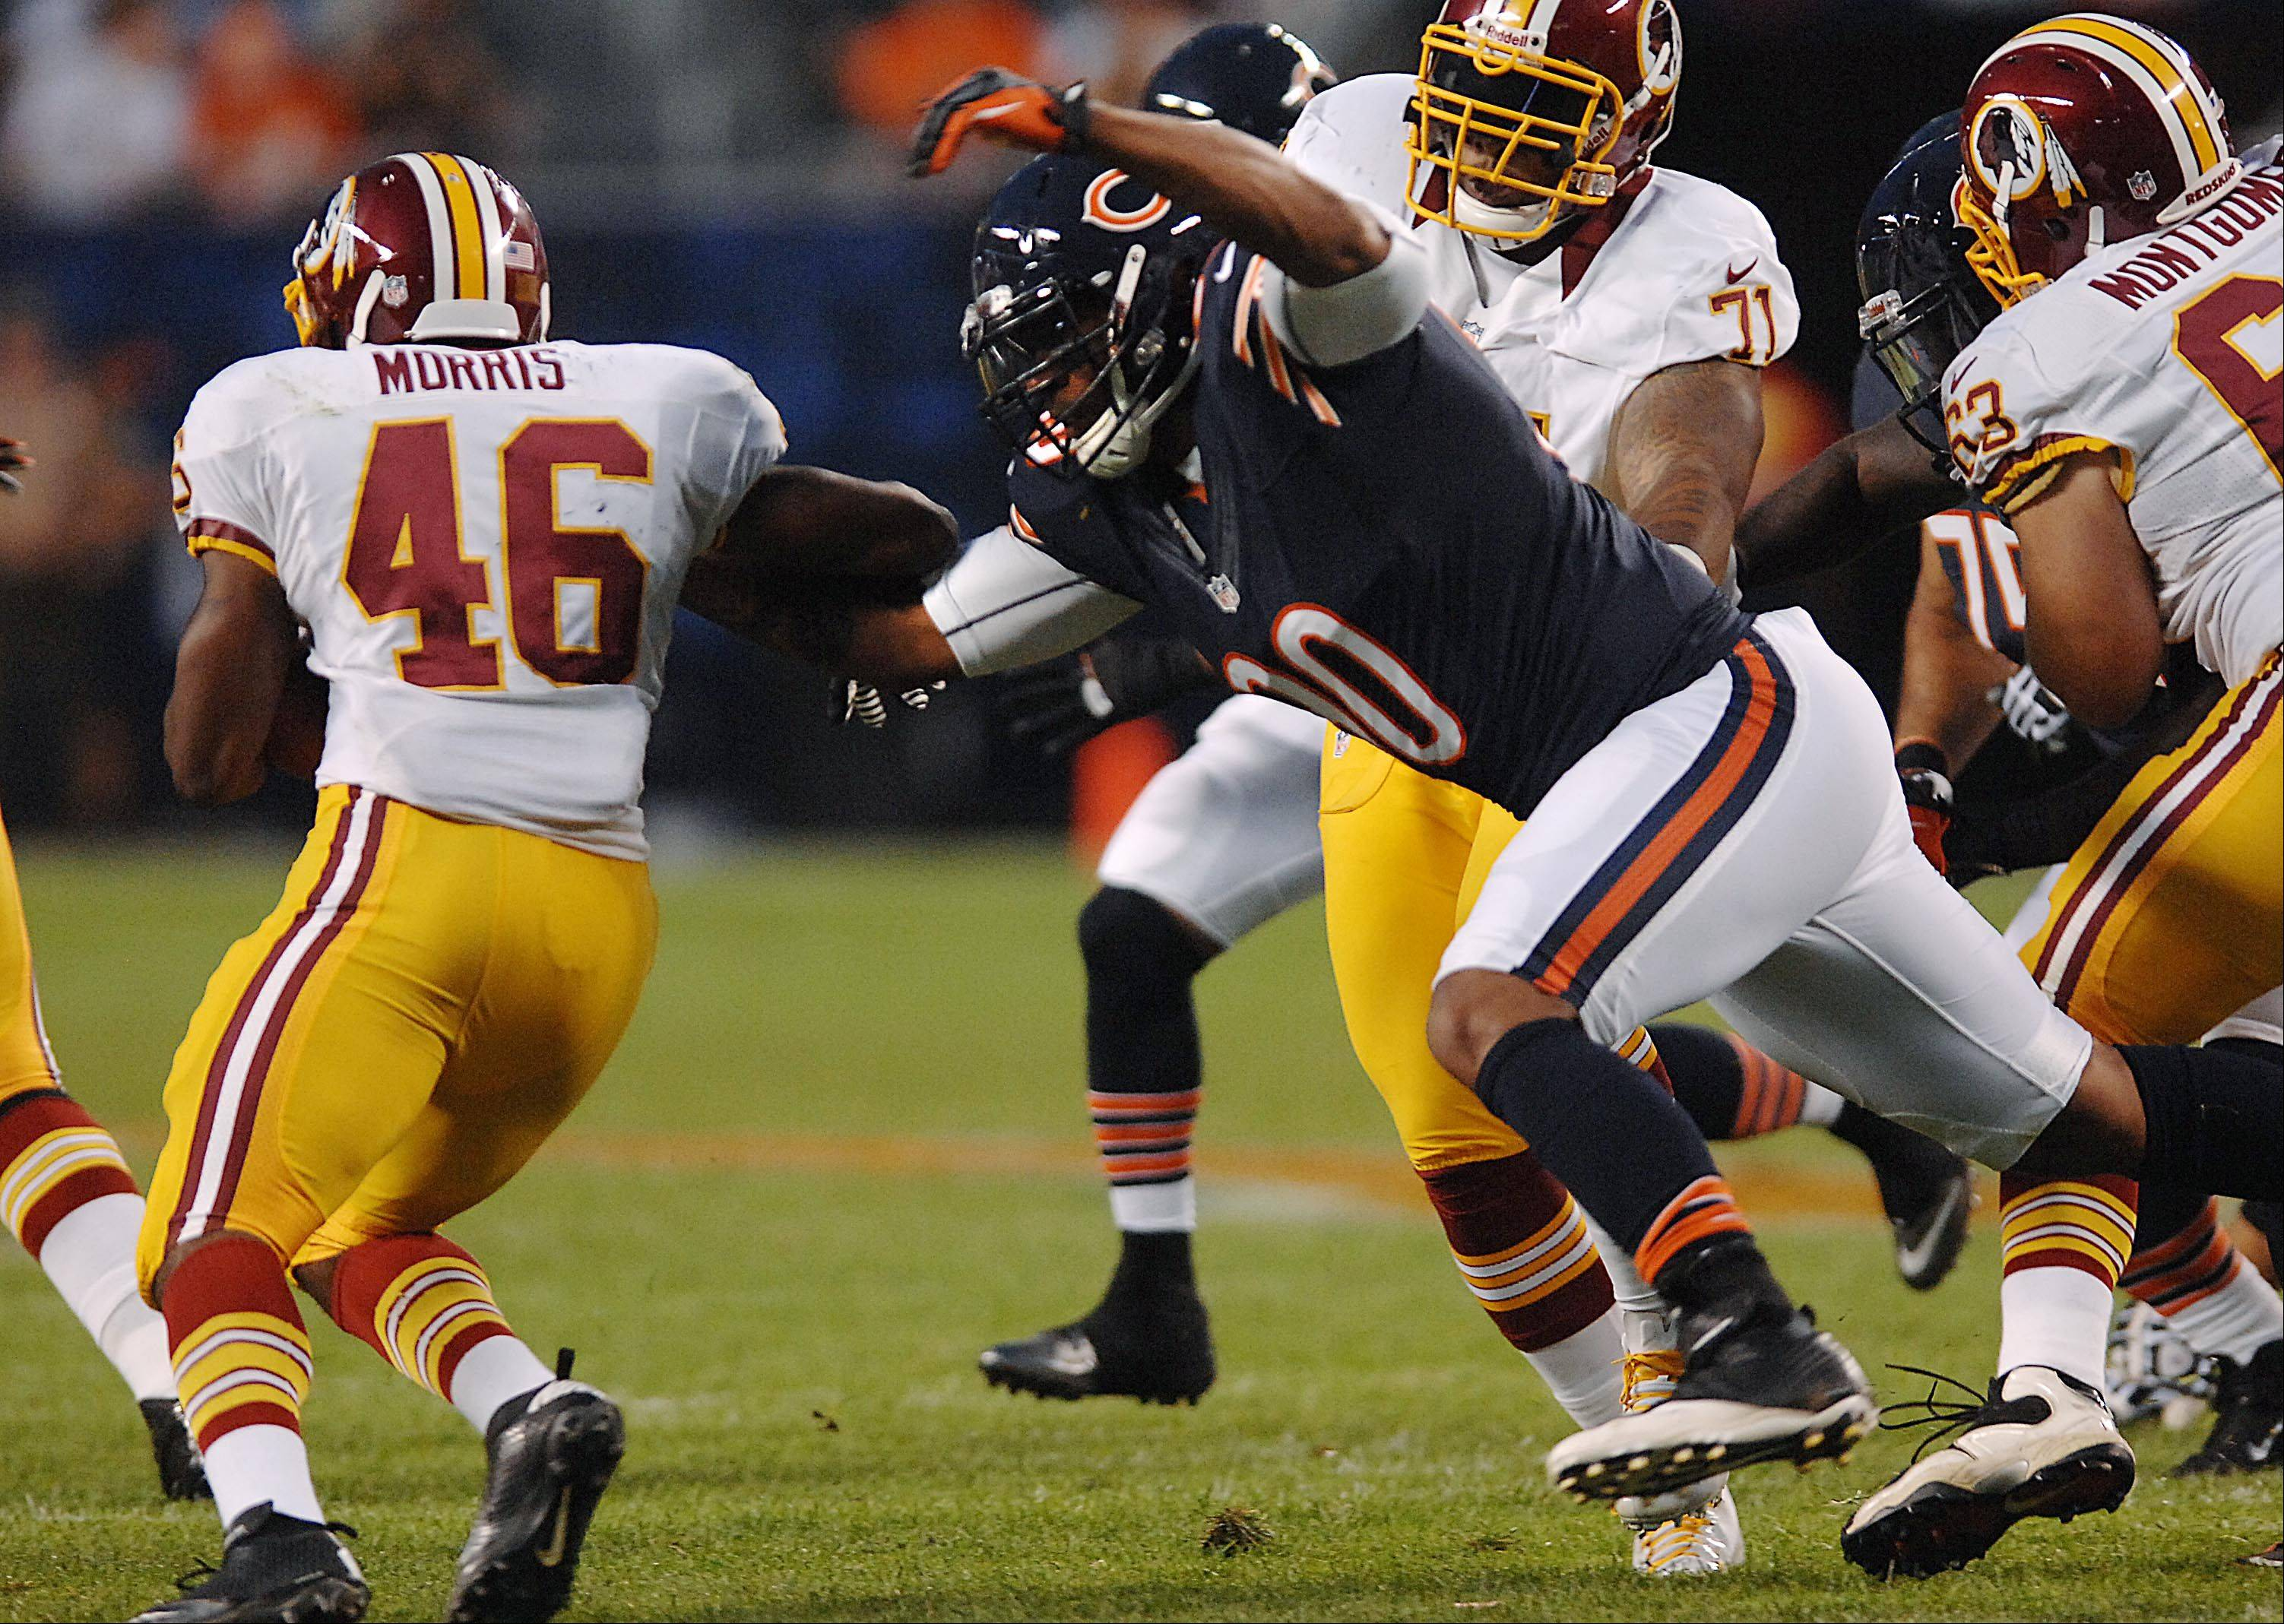 Chicago Bears defensive end Julius Peppers reaches Washington Redskins running back Alfred Morris Saturday in the second preseason game at Soldier Field in Chicago.